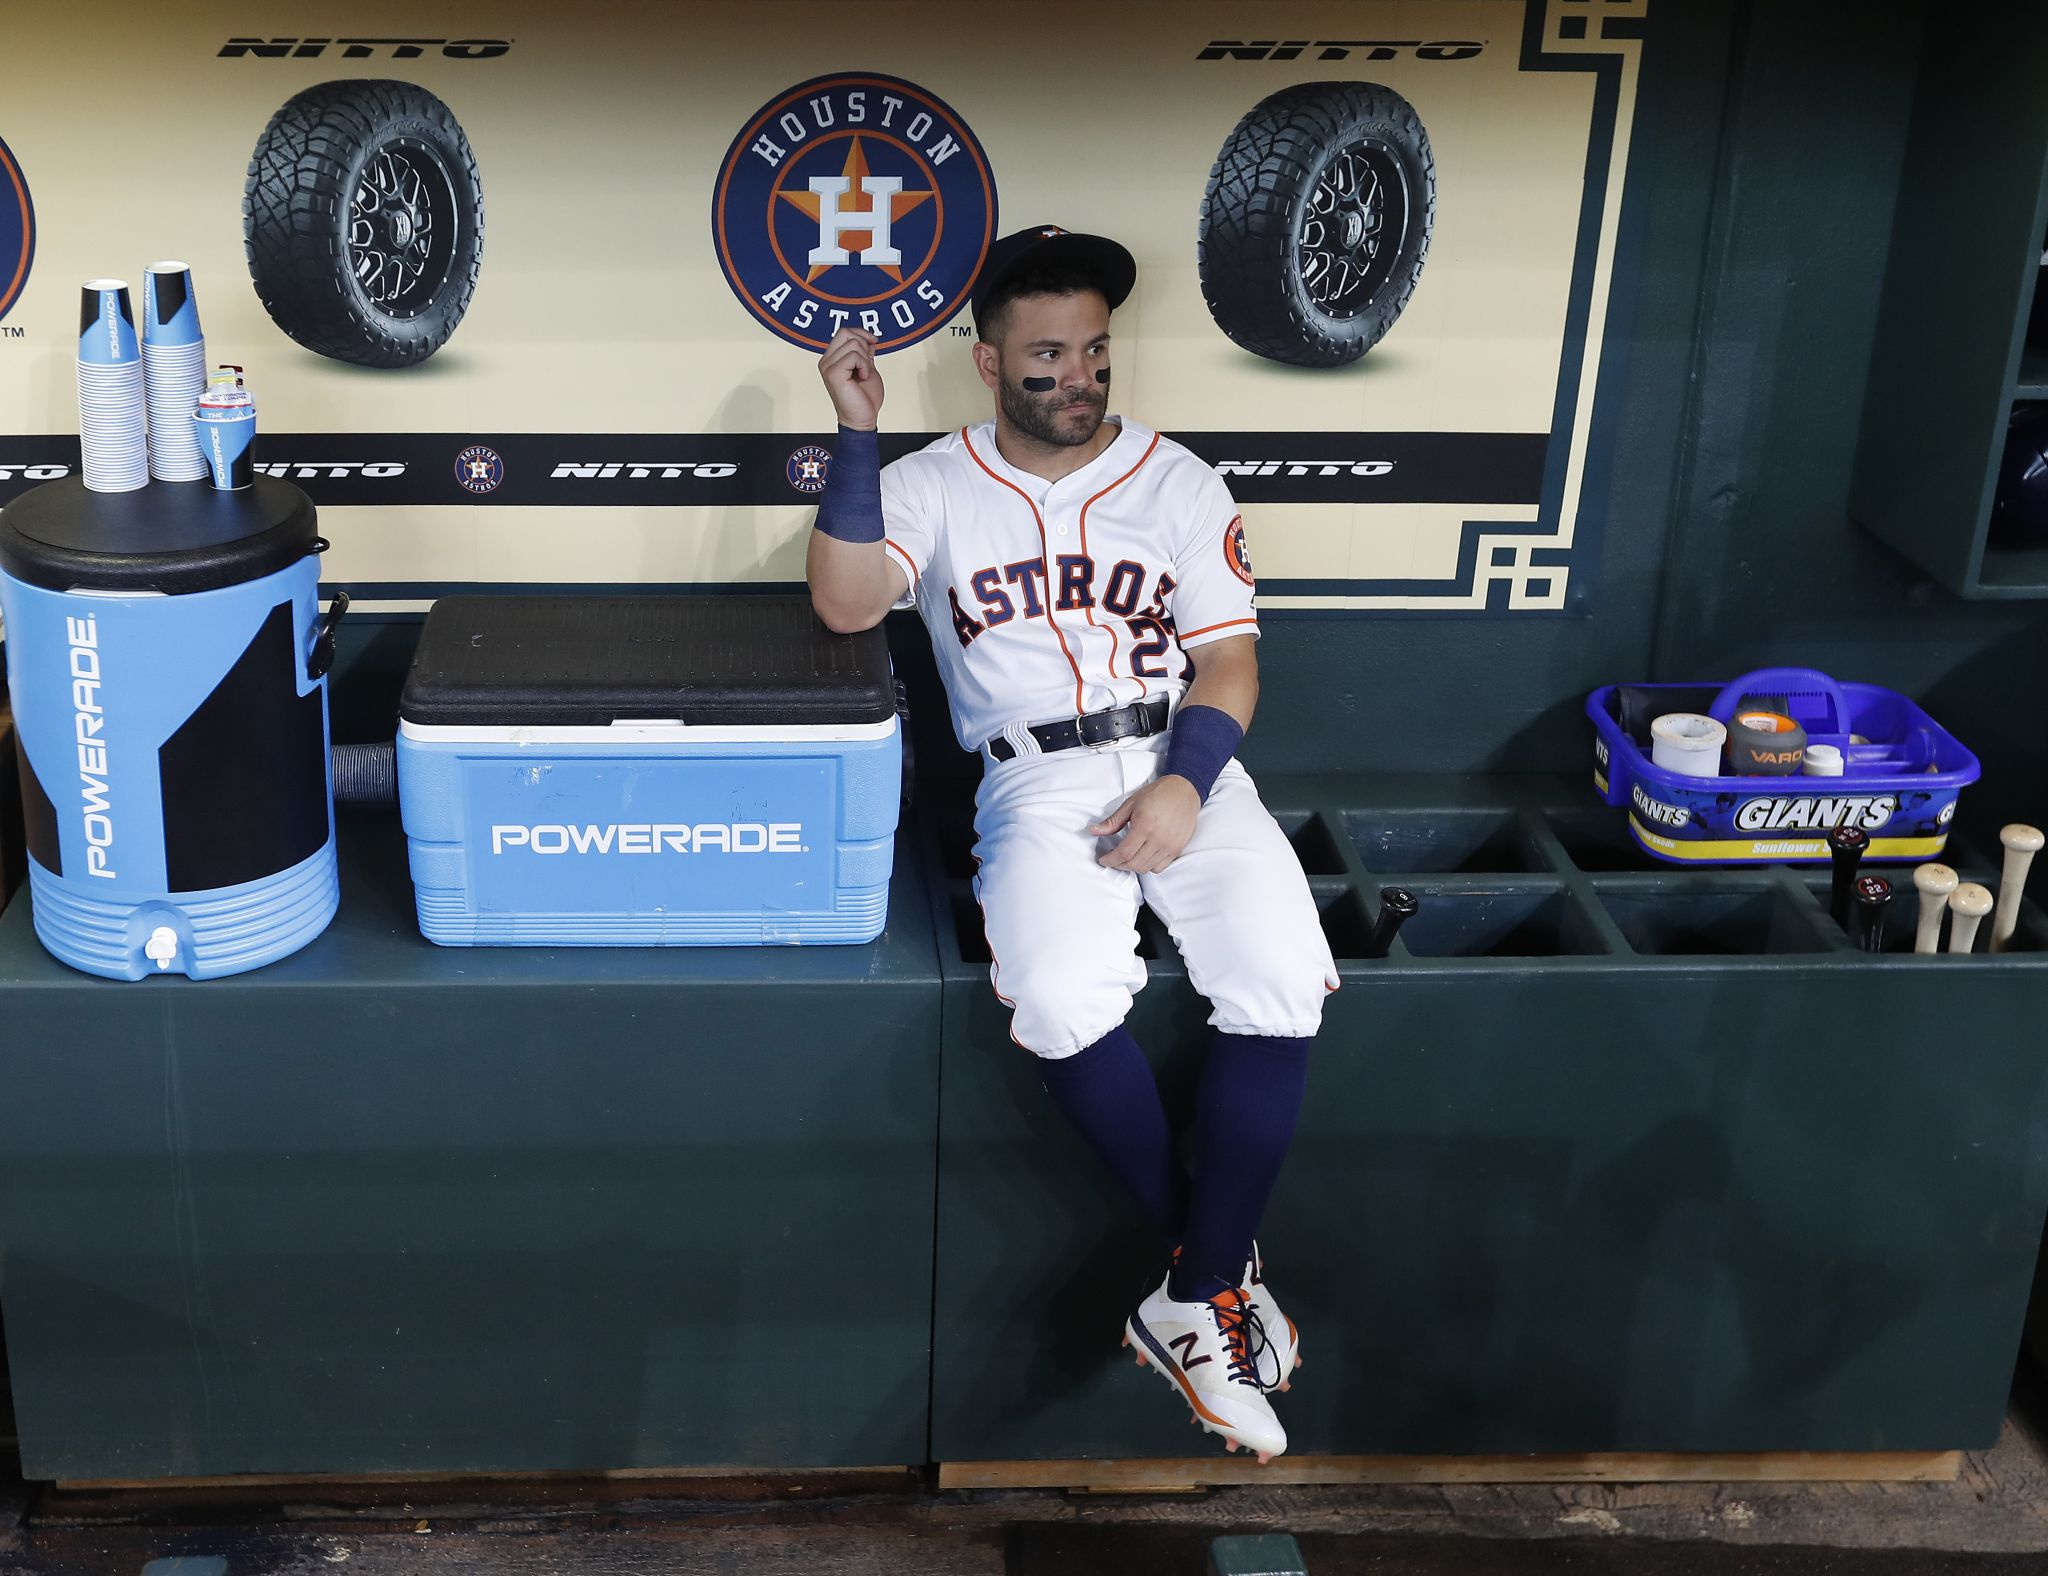 Astros' Jose Altuve to begin rehab assignment with Triple-A Round Rock